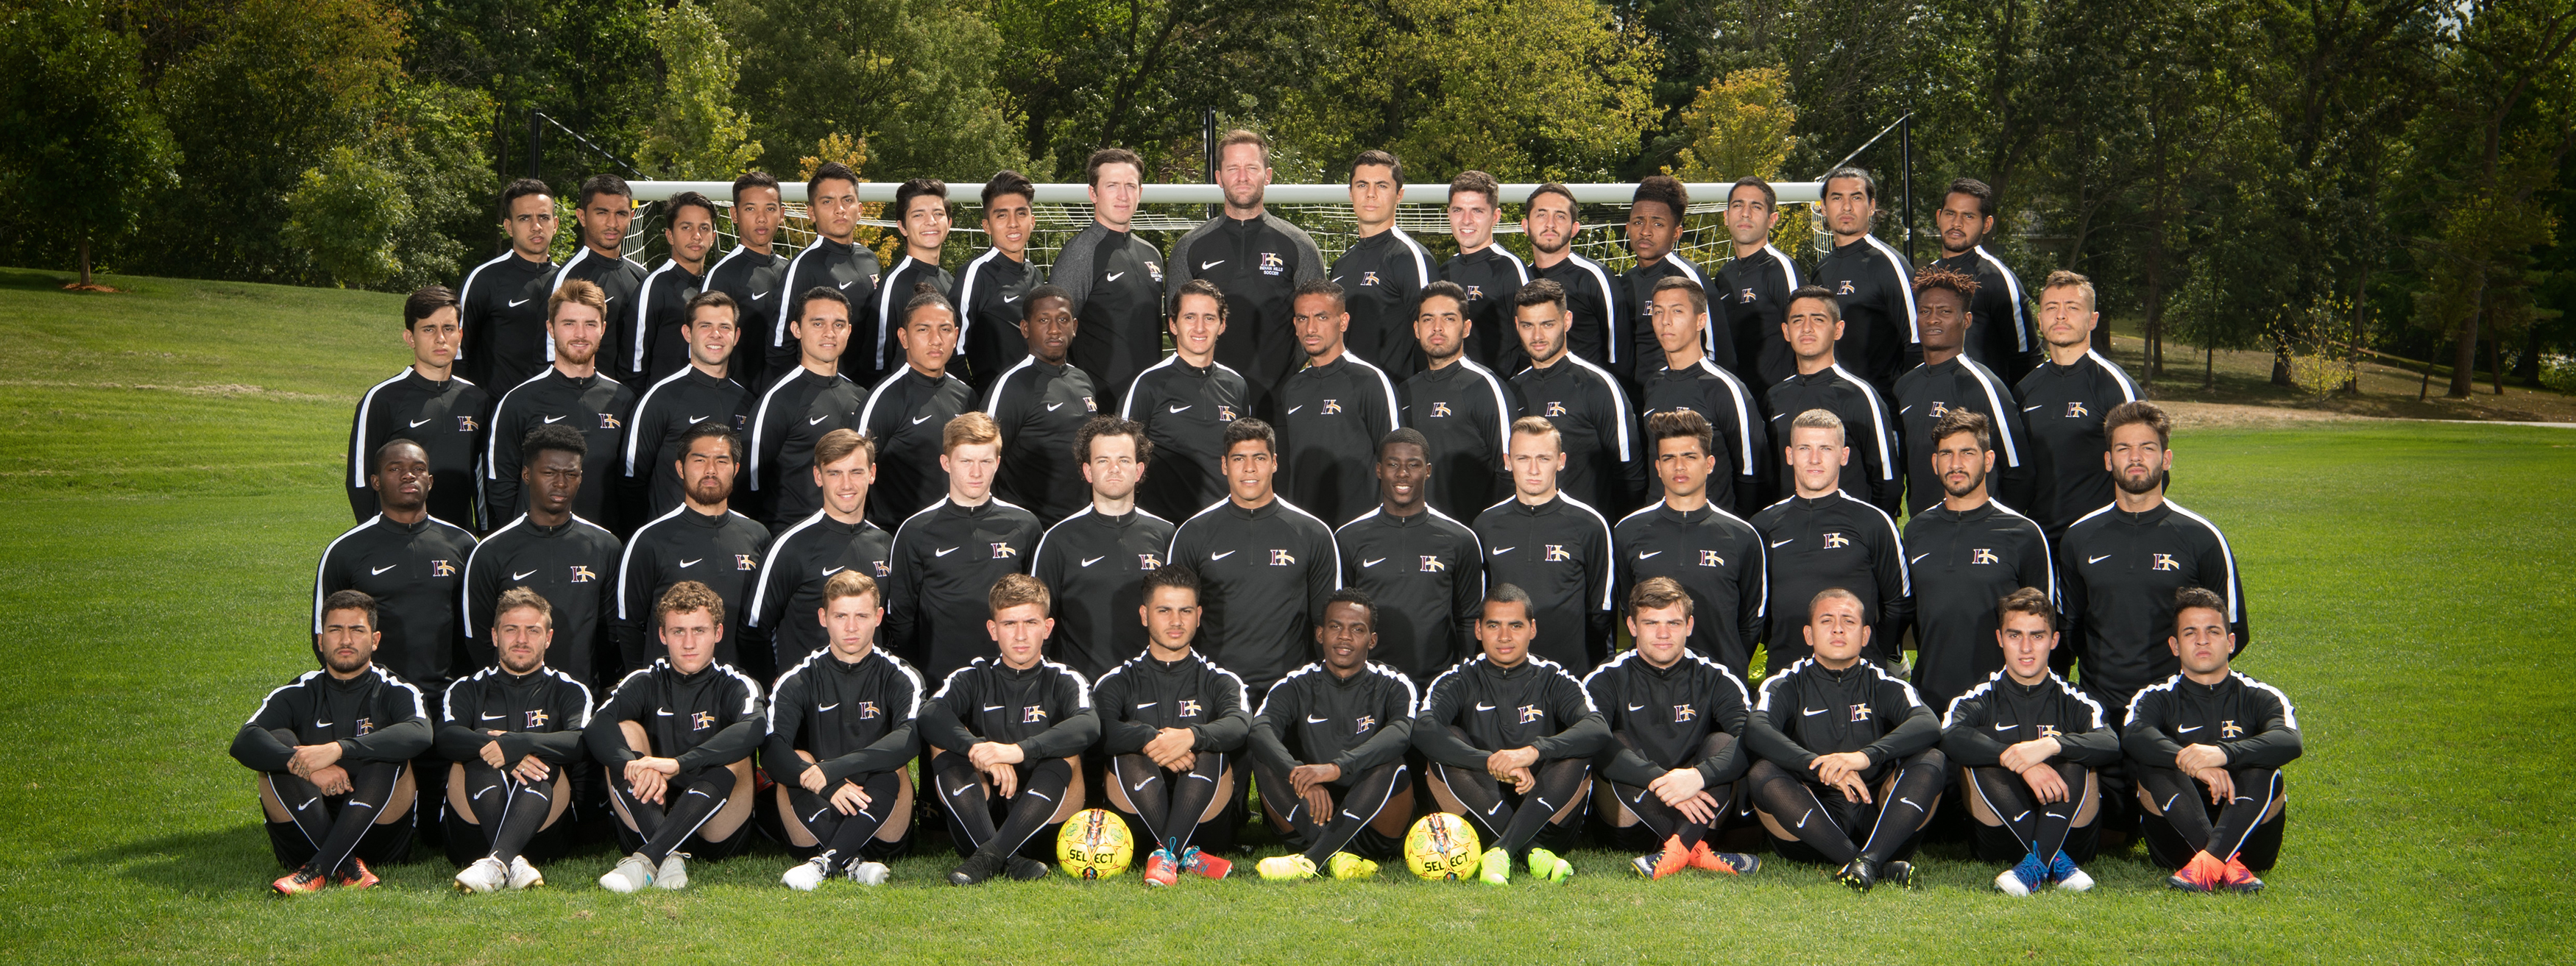 IHCC 2017-18 Men's Soccer Team Photo